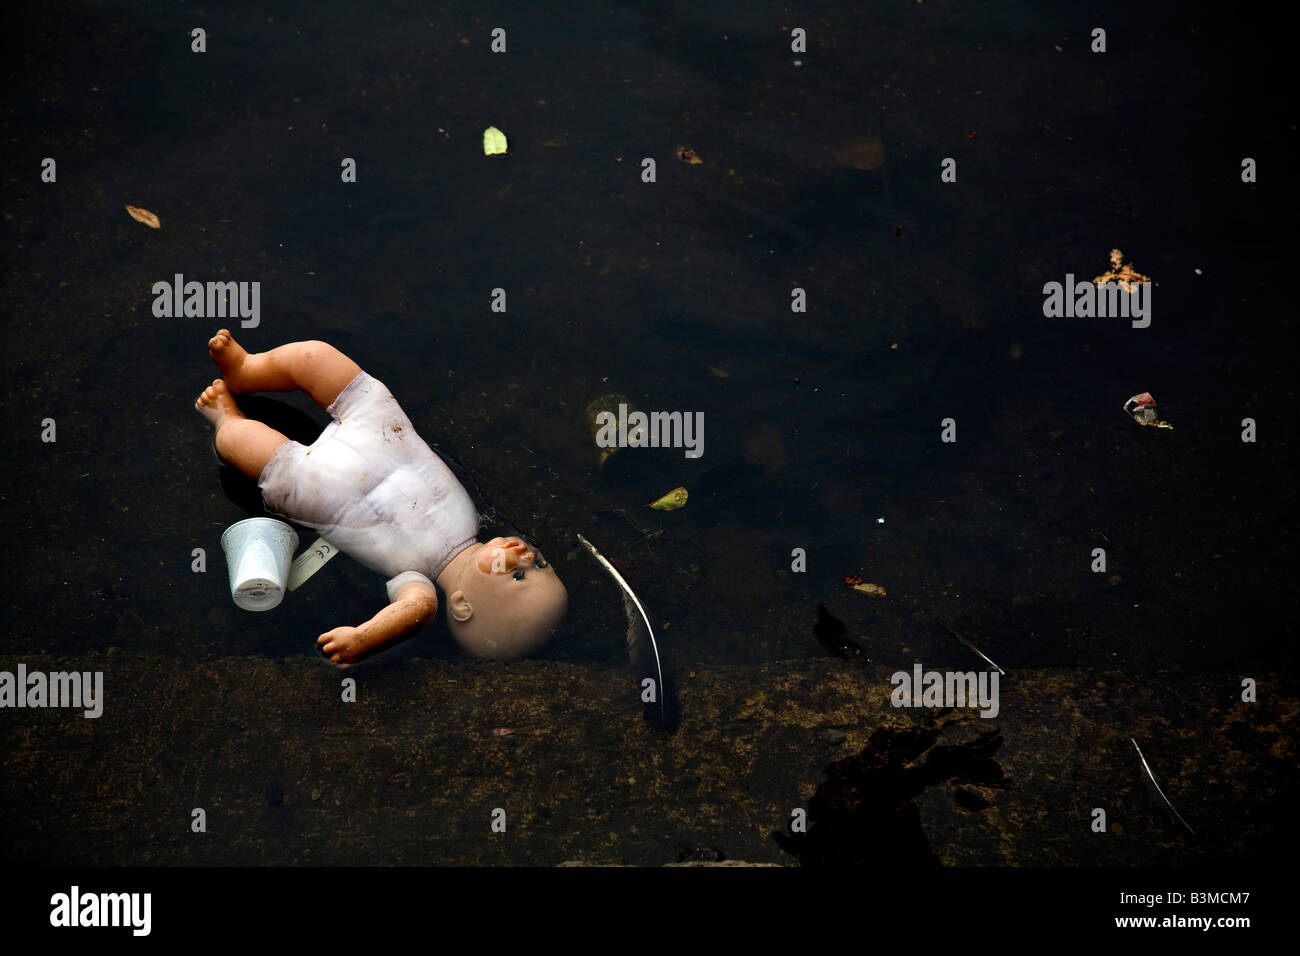 Discarded childrens doll in water with rubbish - Stock Image